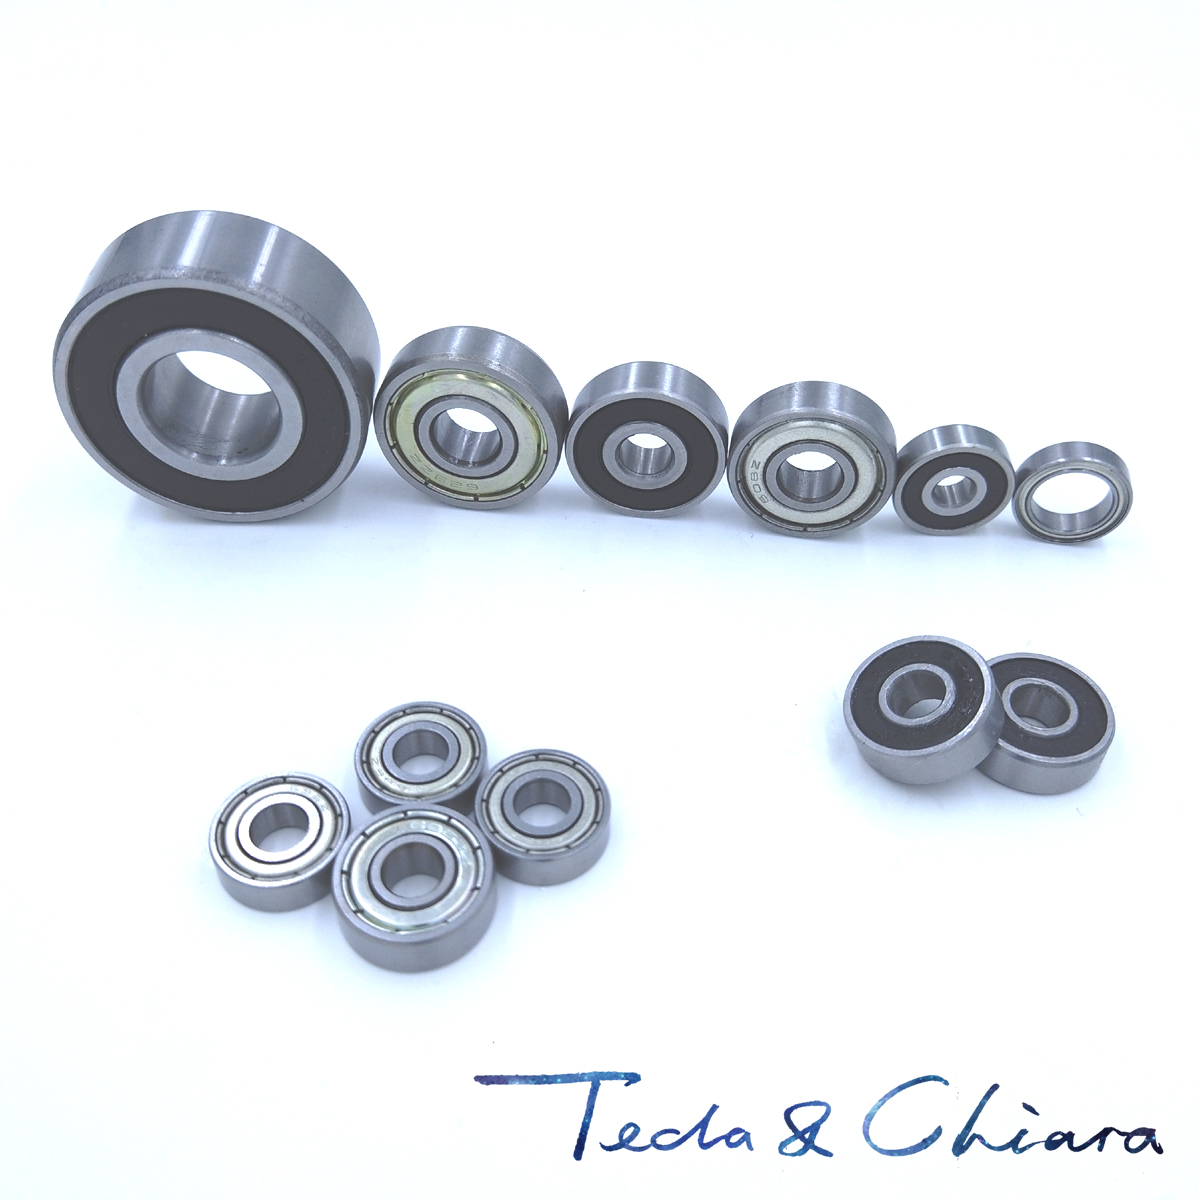 6302 6302ZZ 6302RS 6302-2Z 6302Z 6302-2RS ZZ RS RZ 2RZ Deep Groove Ball Bearings 15 X 42 X 13mm